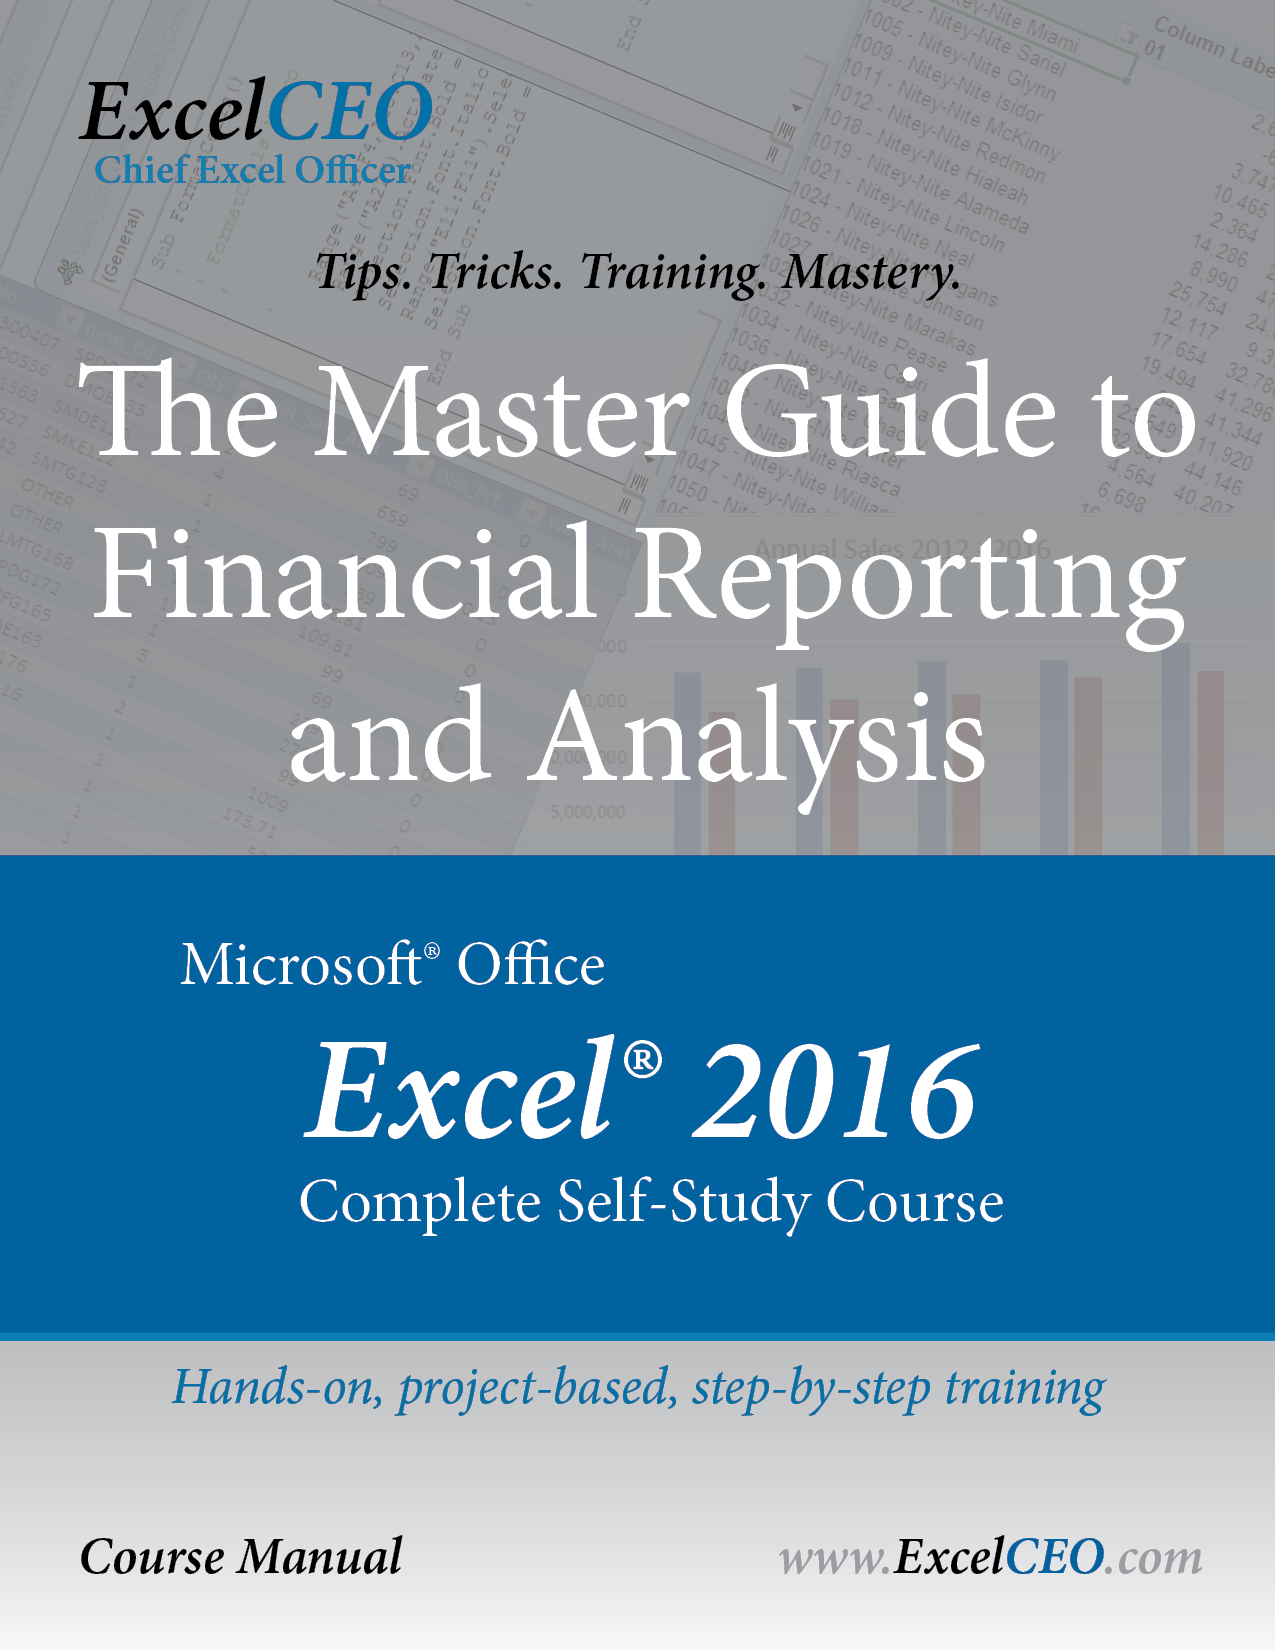 Excel 2016 Manual Cover and Product Page Link